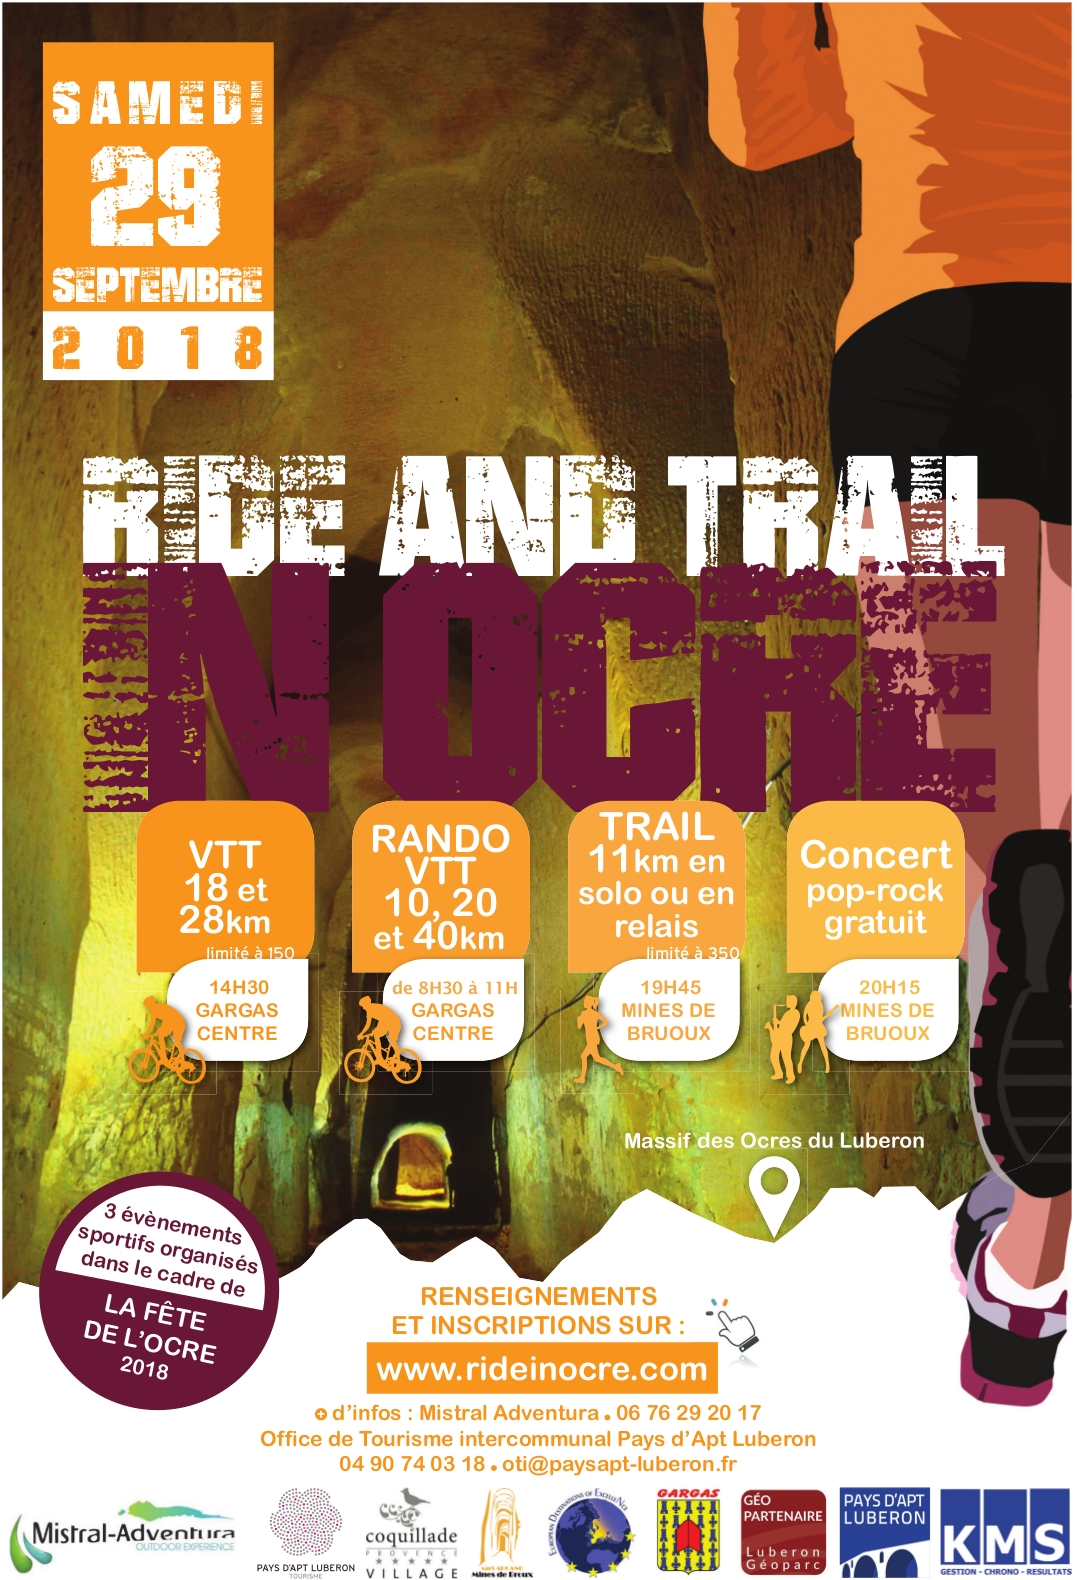 Ride & Trail In Ocre : Trail 11Km - Solo